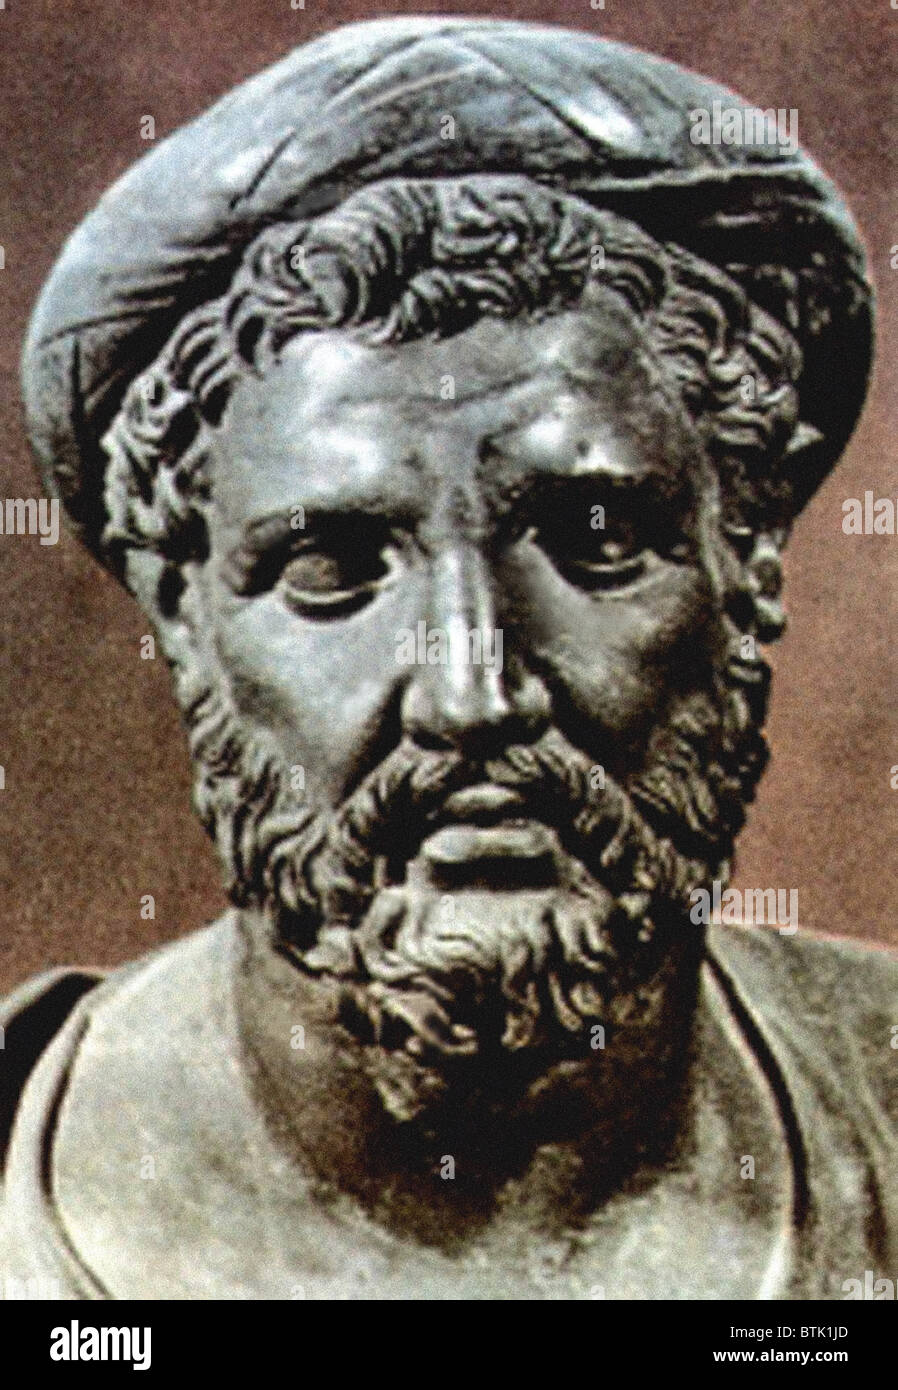 pythagoras stock photos pythagoras stock images alamy pythagoras bust of the 6th century bc mathematician and philosopher born 569 bc in